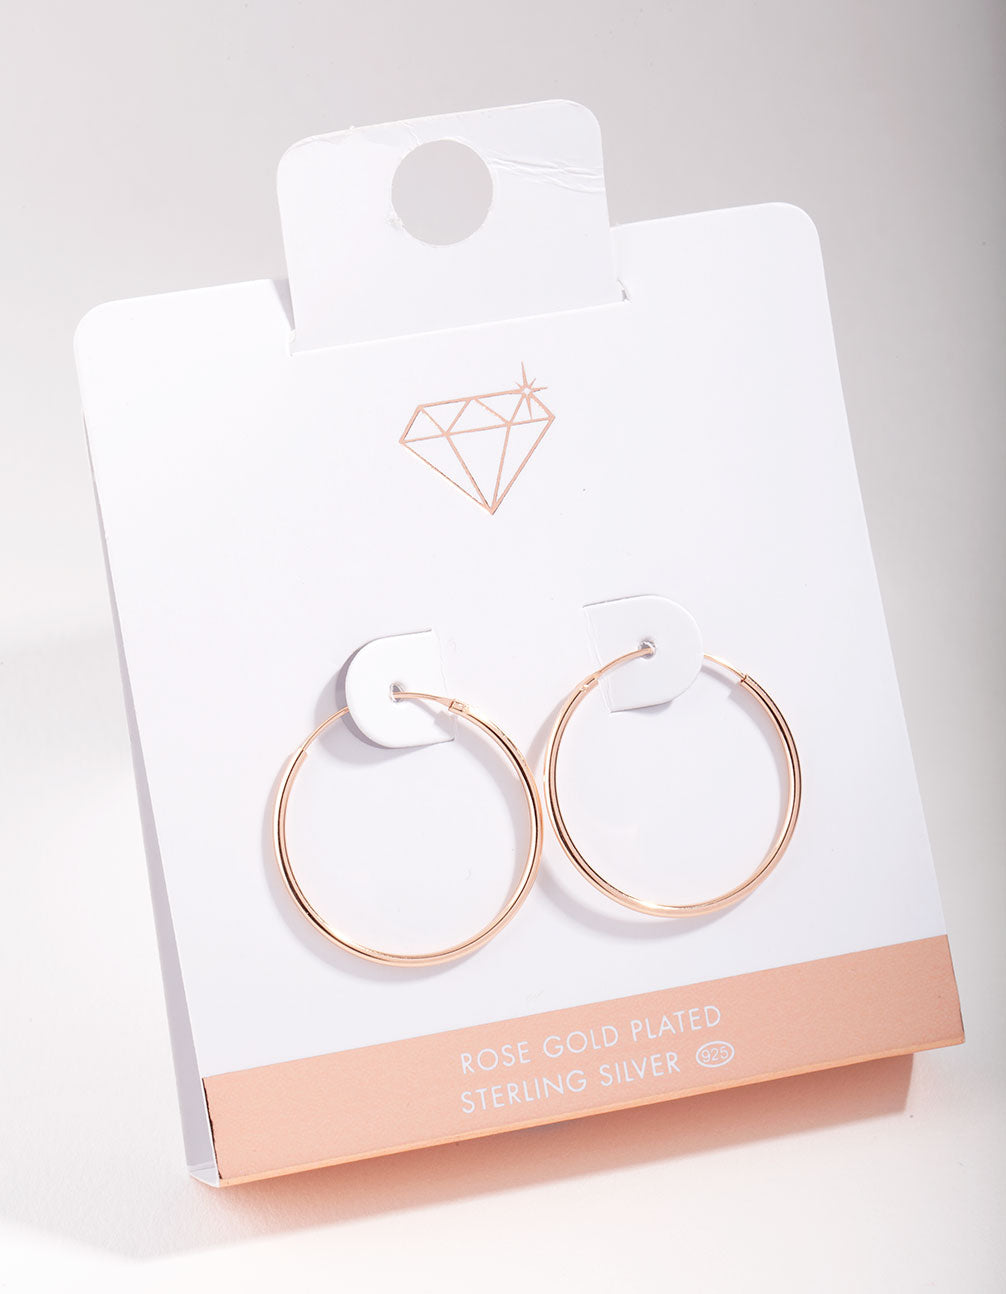 Rose Gold Plated Sterling Silver 25mm Hoop Earrings